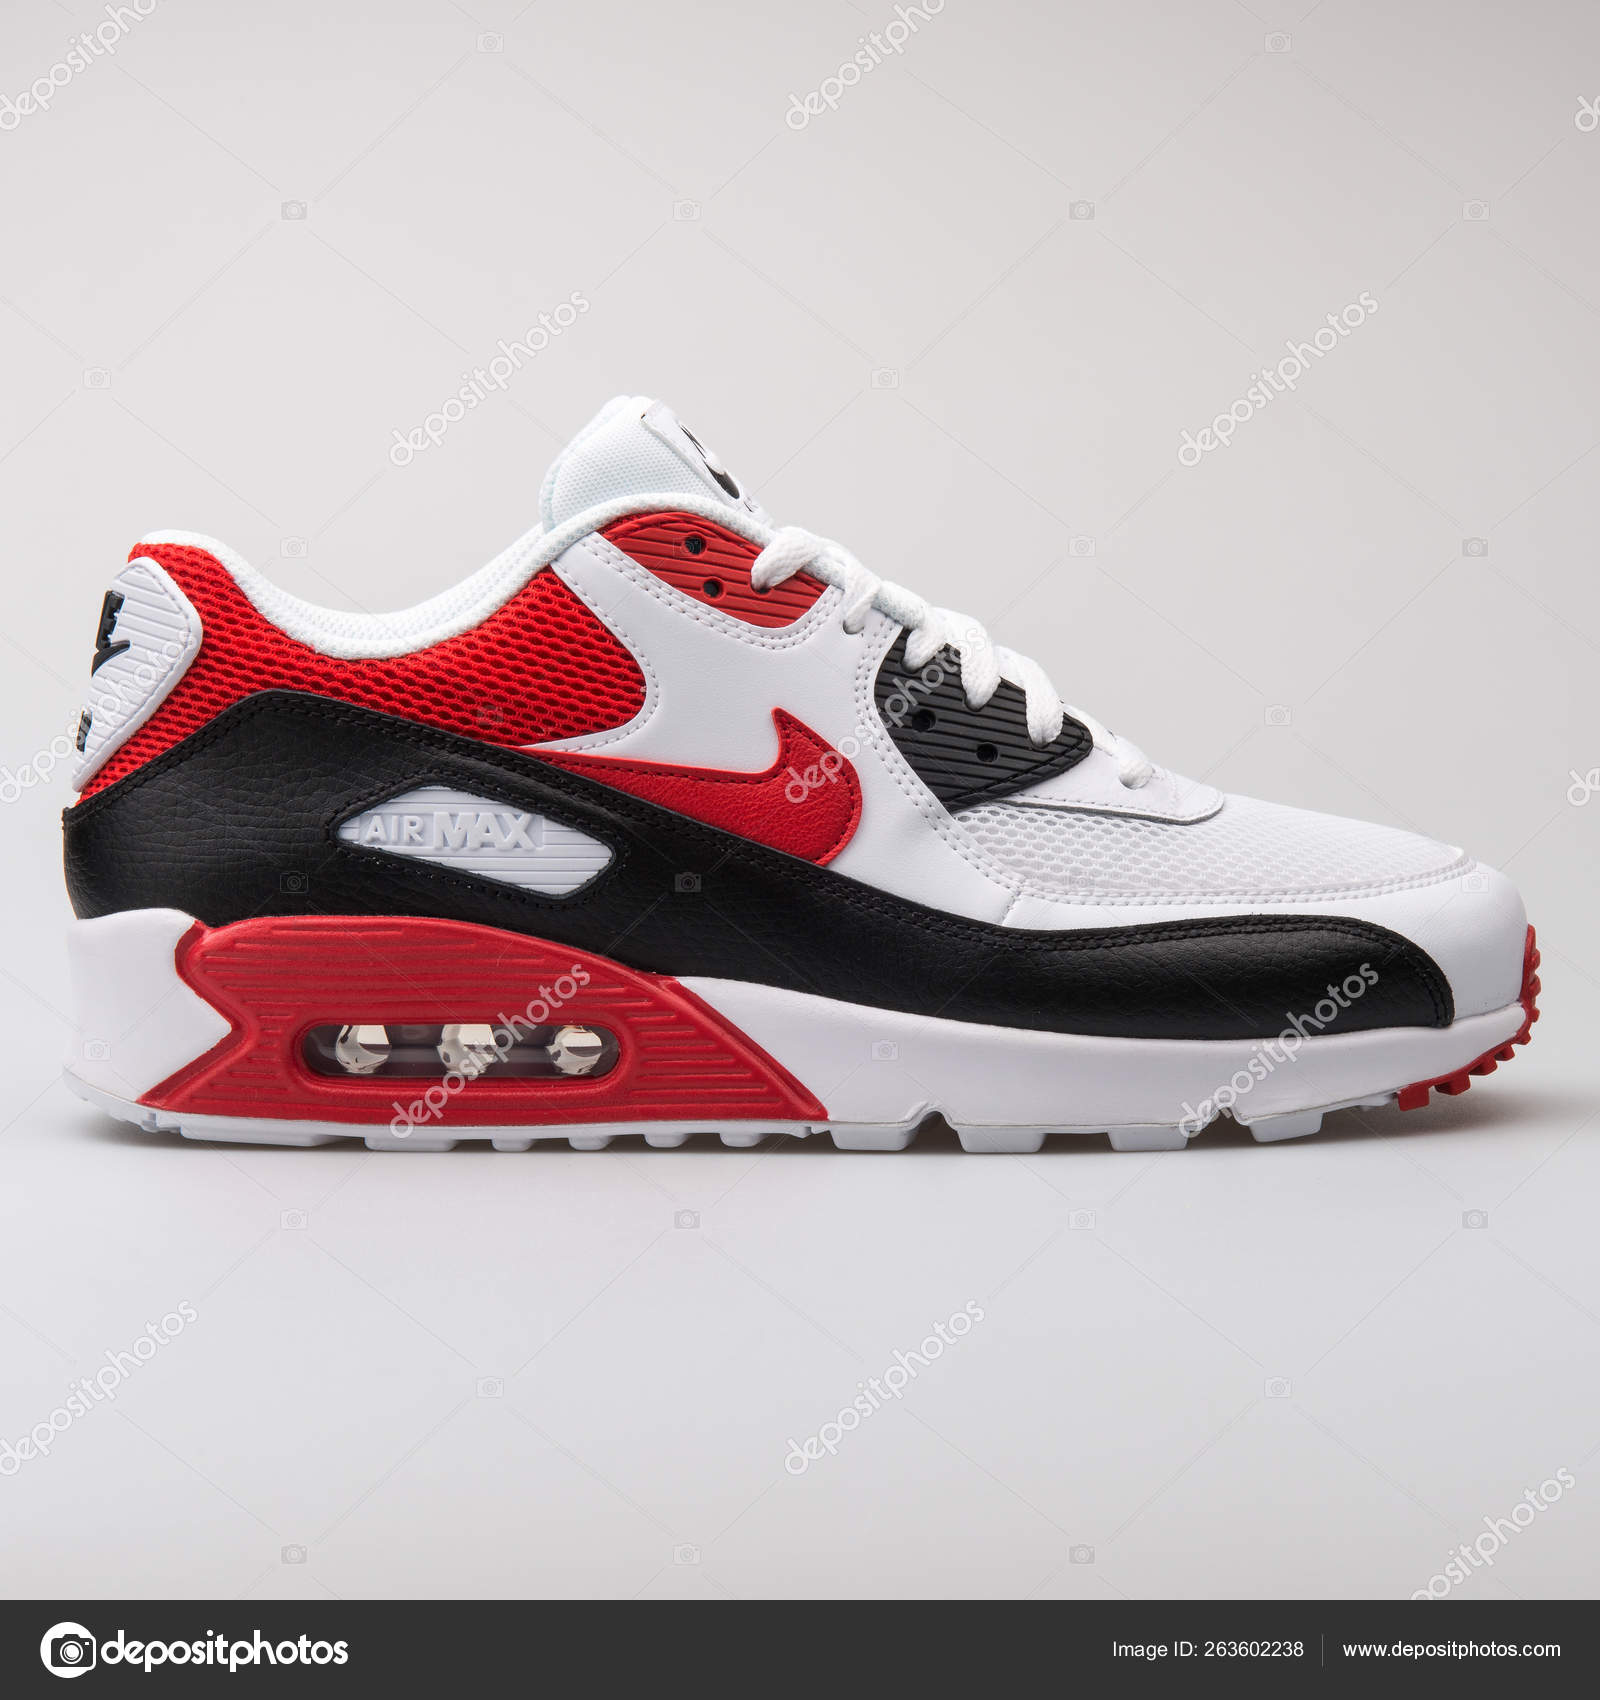 Nike Air Max 90 Essential shoes white black red